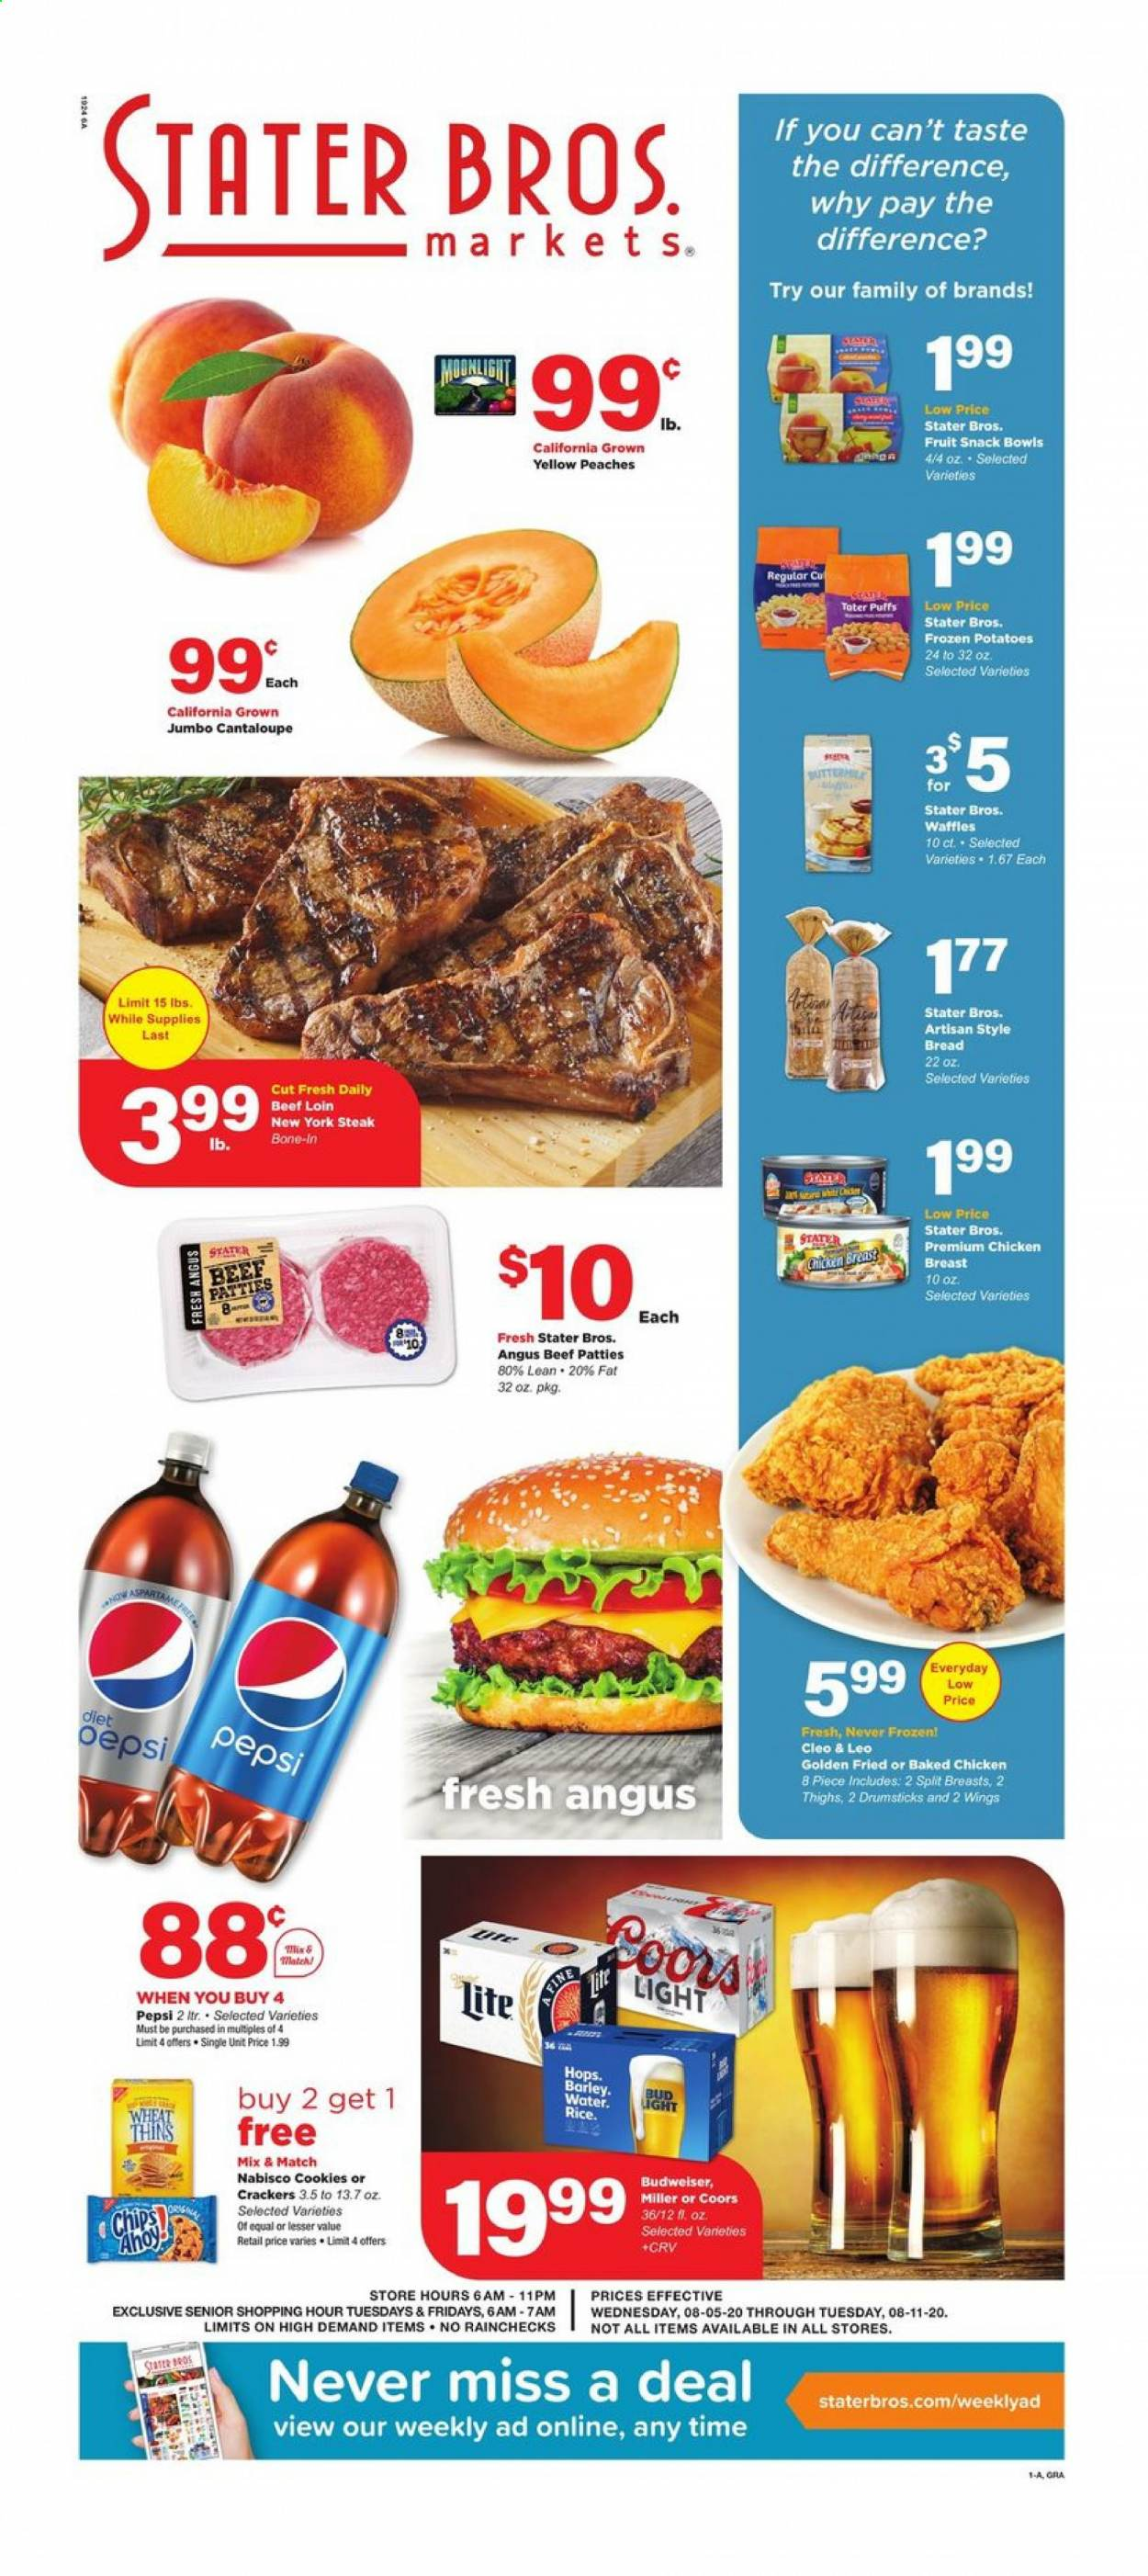 Stater Bros. Flyer - 08.05.2020 - 08.11.2020 - Sales products - barley, beef meat, bowl, bread, budweiser, cantaloupe, cookies, crackers, gra, rice, potatoes, puffs, chicken, peaches, pepsi, chips, steak, snack, bud light, fruit, wings, miller, coors, peache. Page 1.